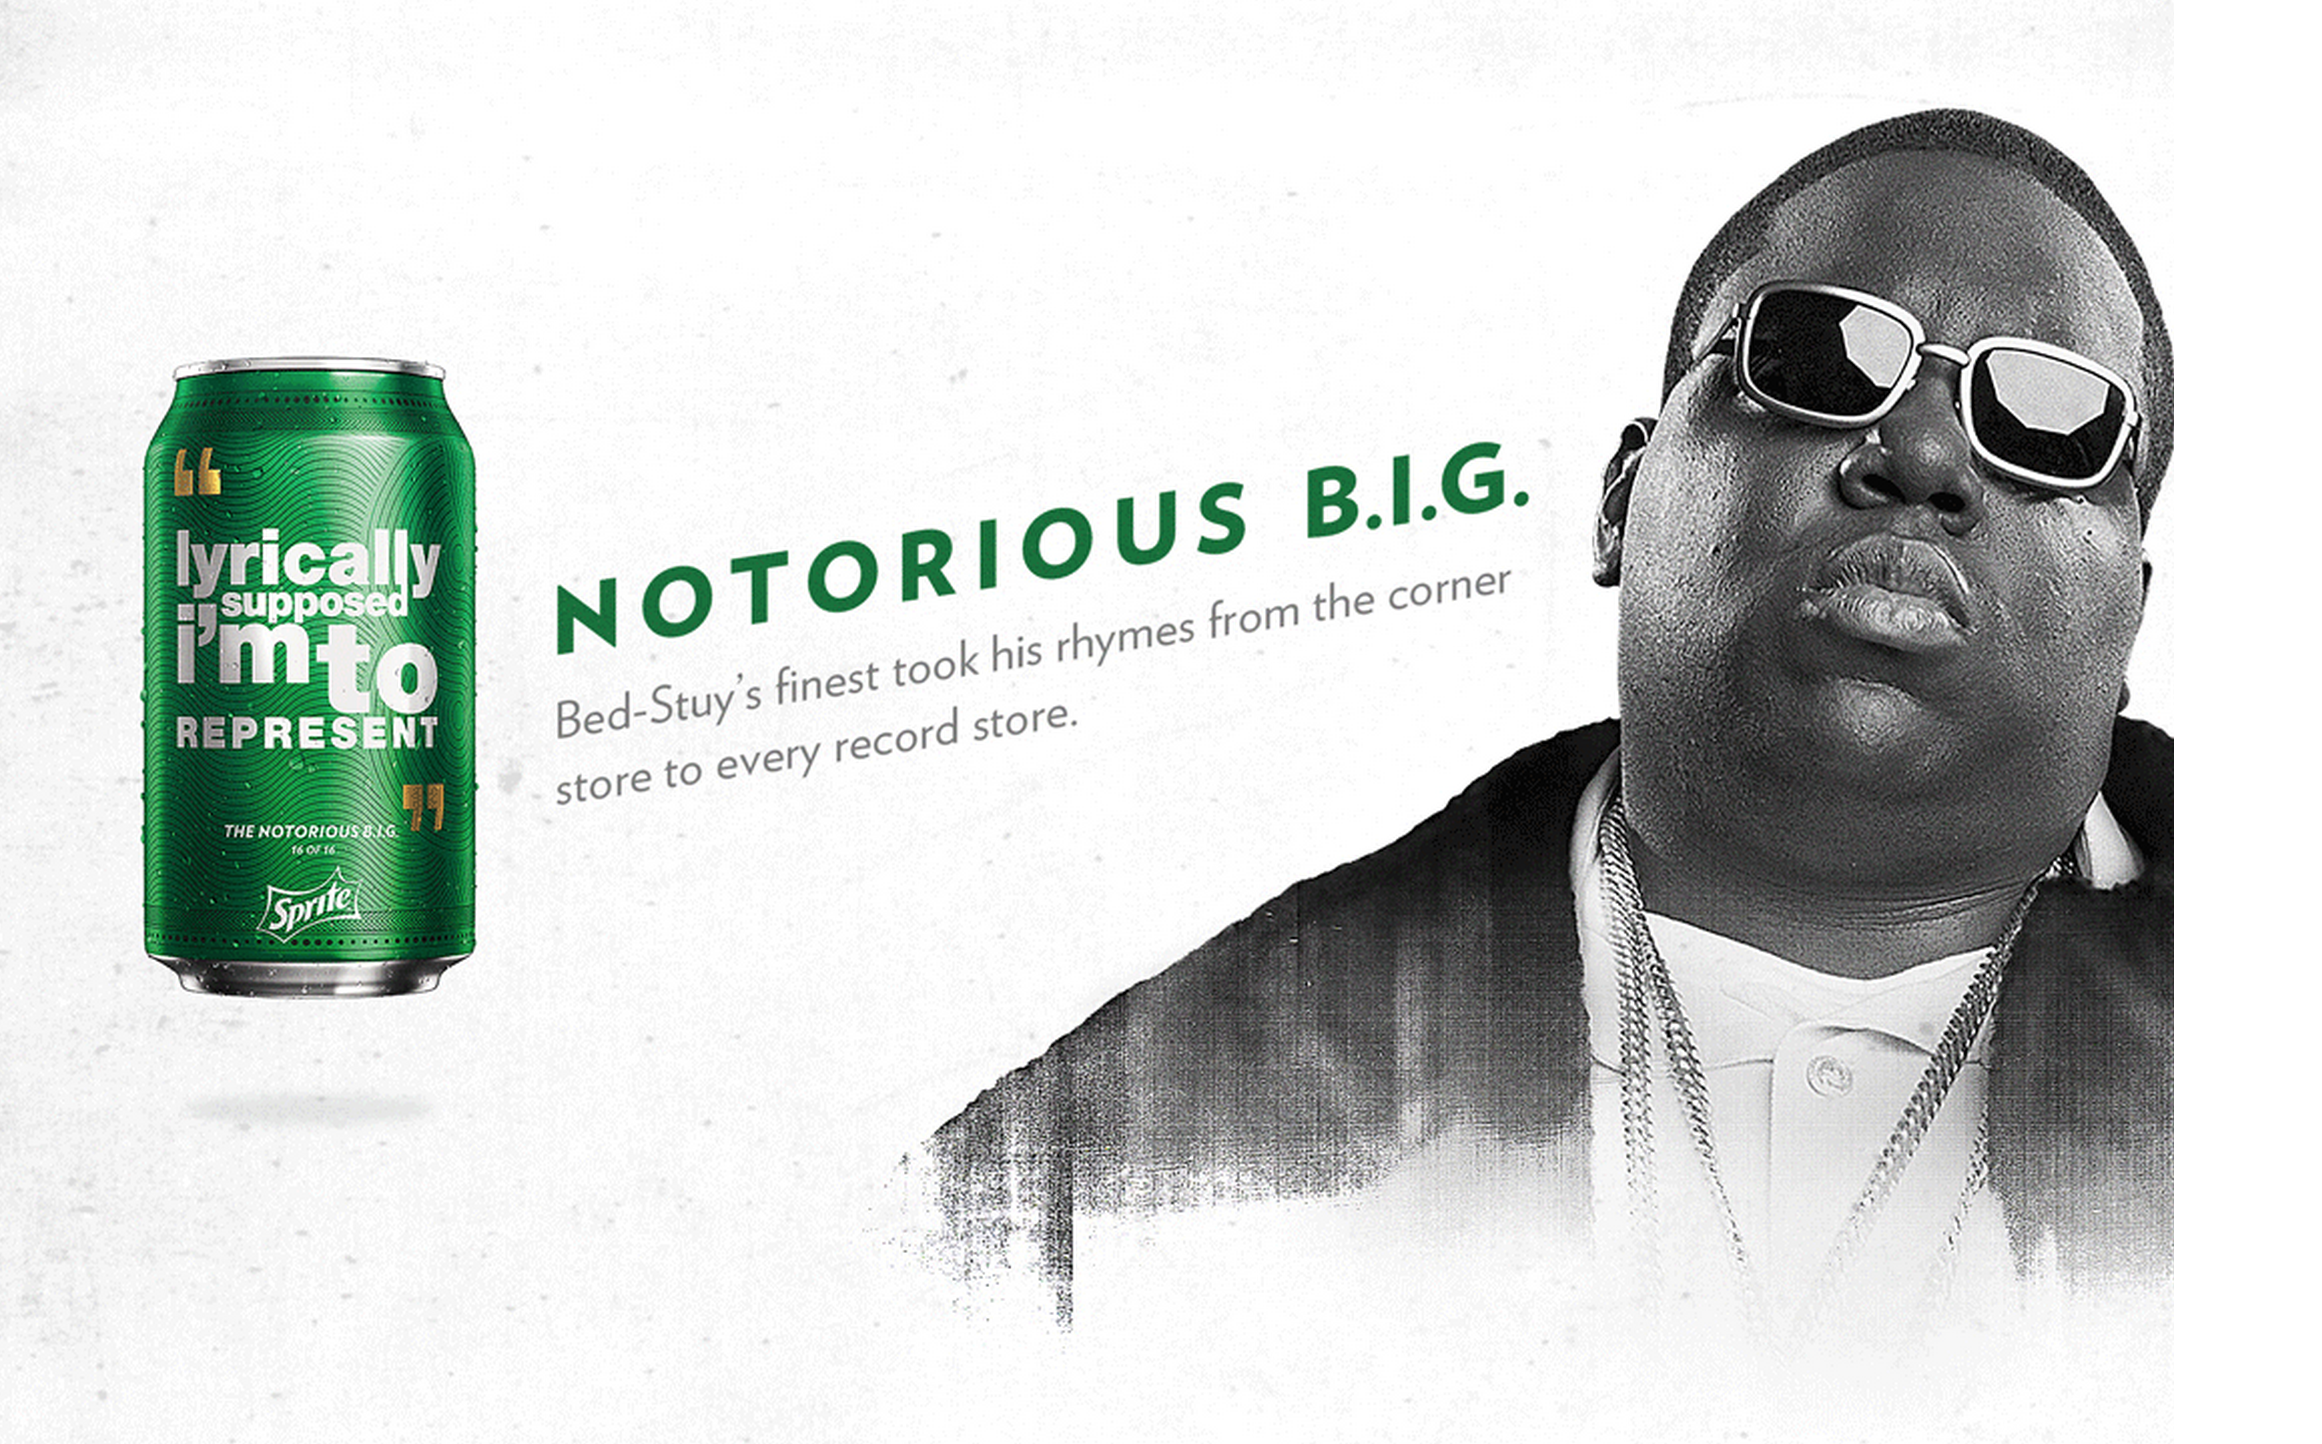 Notorious B.I.G. - Sprite turns 30